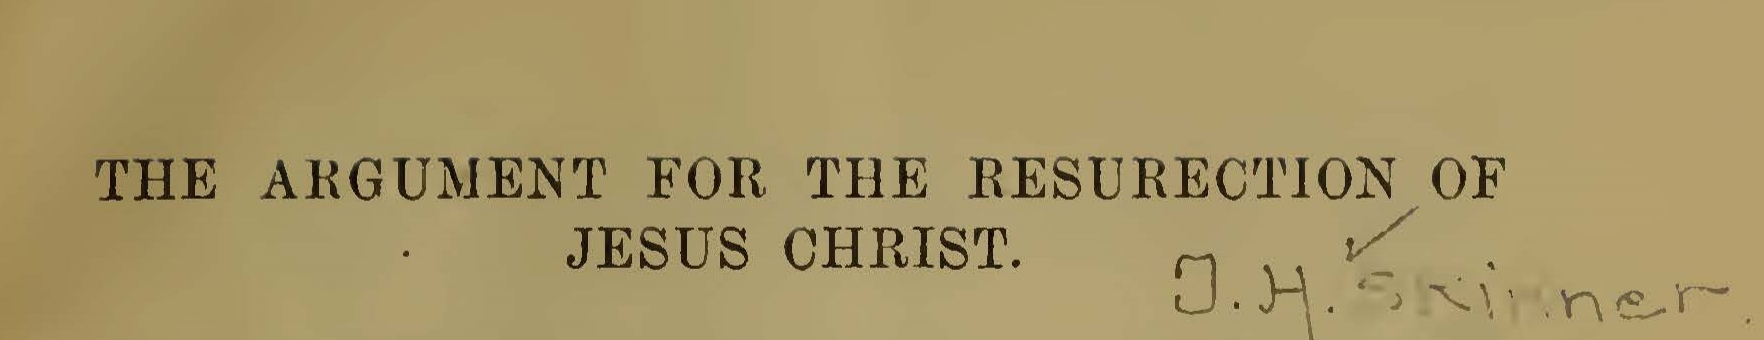 Skinner, Jr., Thomas Harvey, The Argument for the Resurrection of Jesus Christ Title Page.jpg